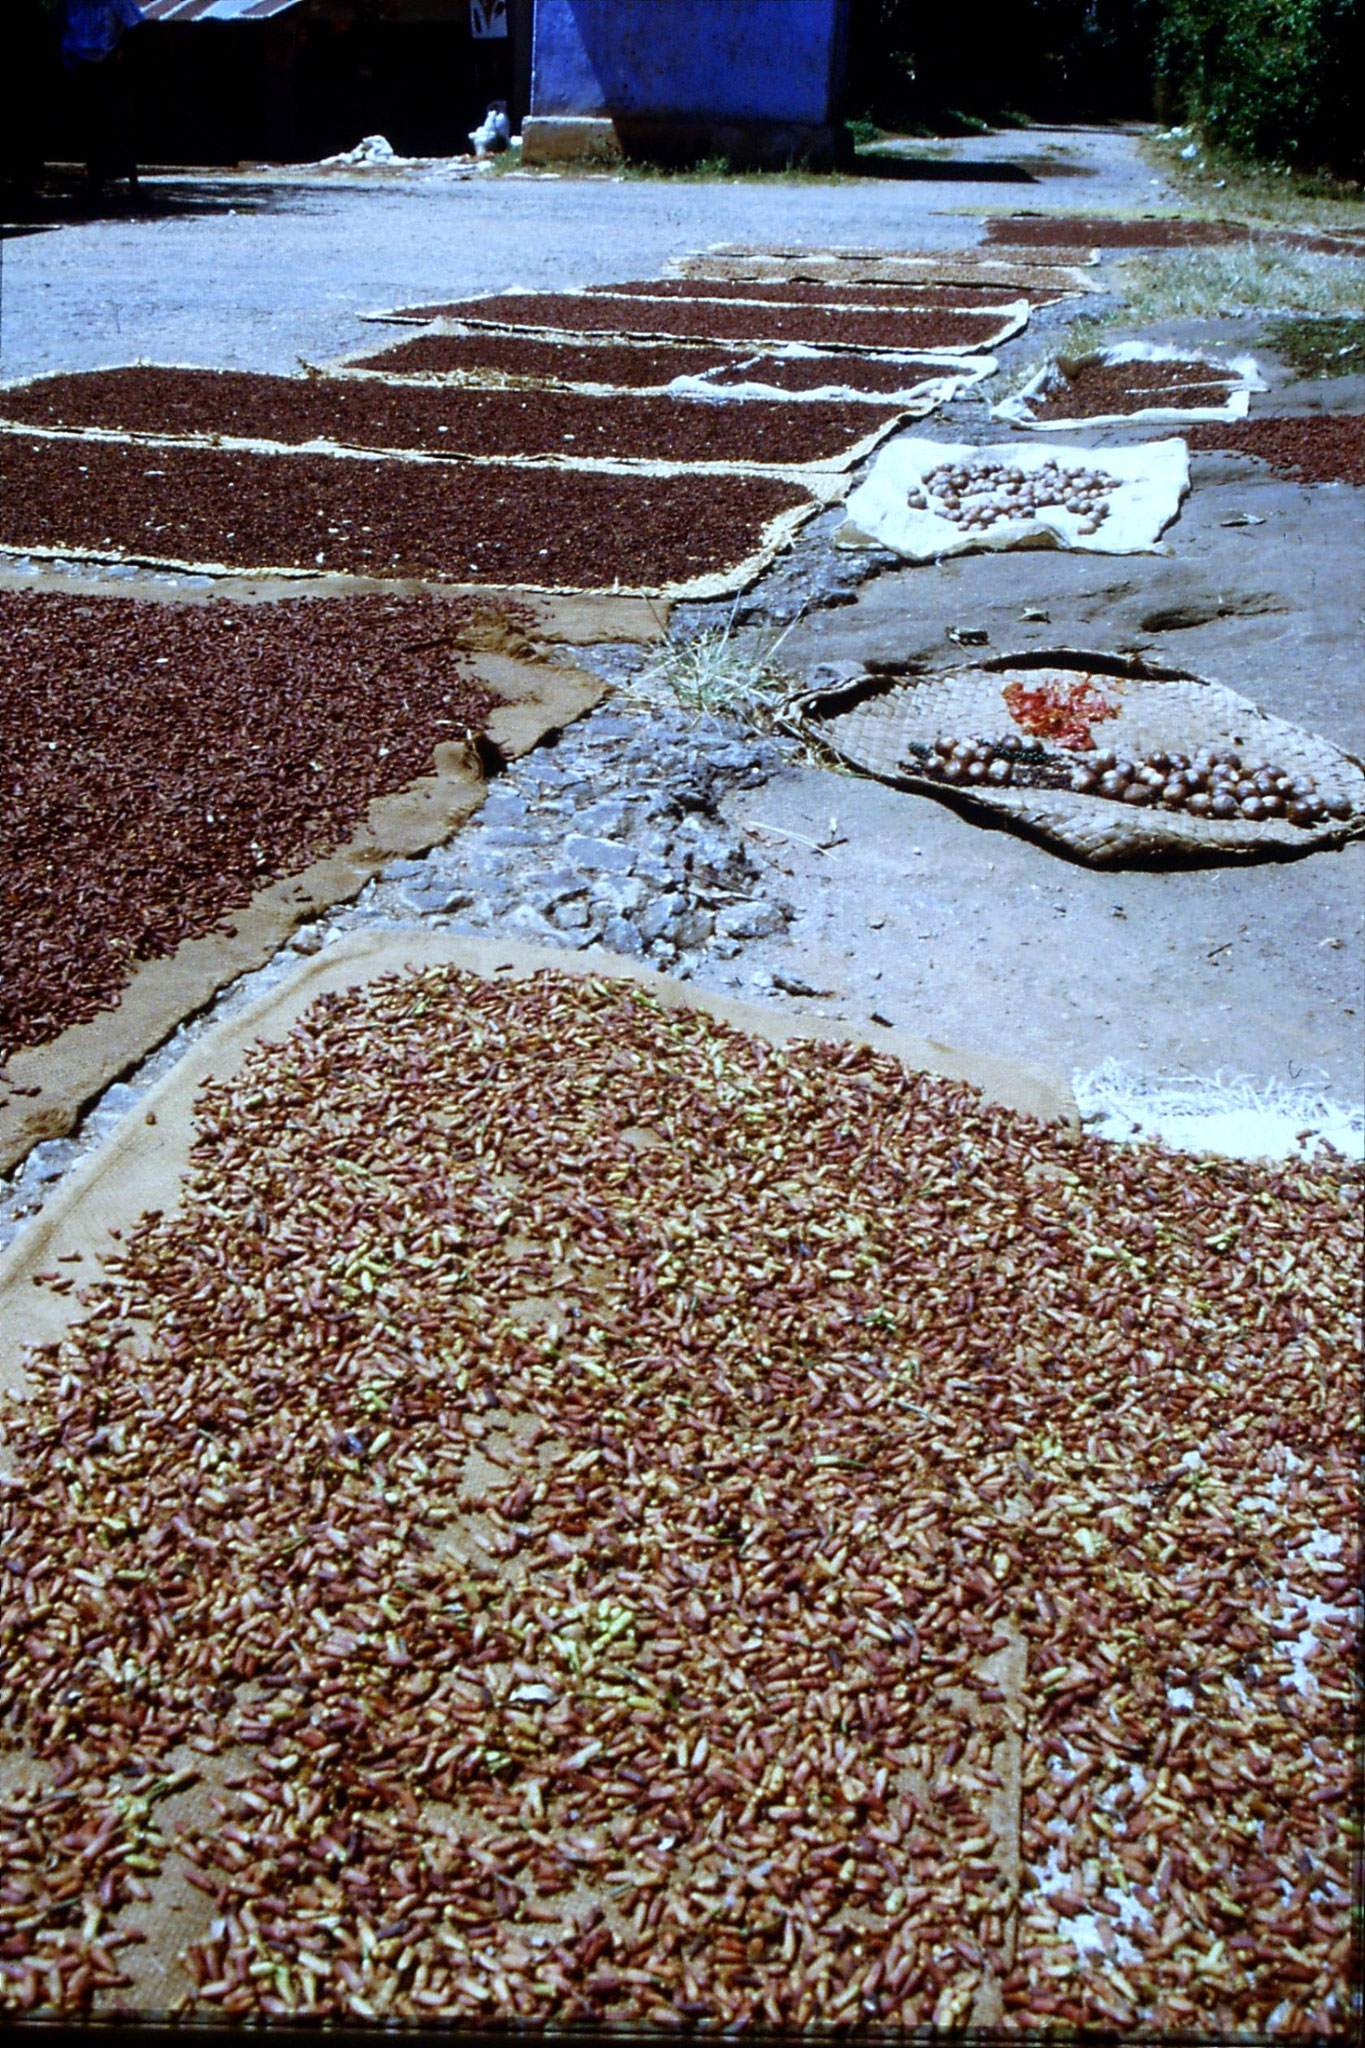 5/2/1990: 21: Outside Kandy Lankatilaka Temple, cloves, nutmegs, peppers drying